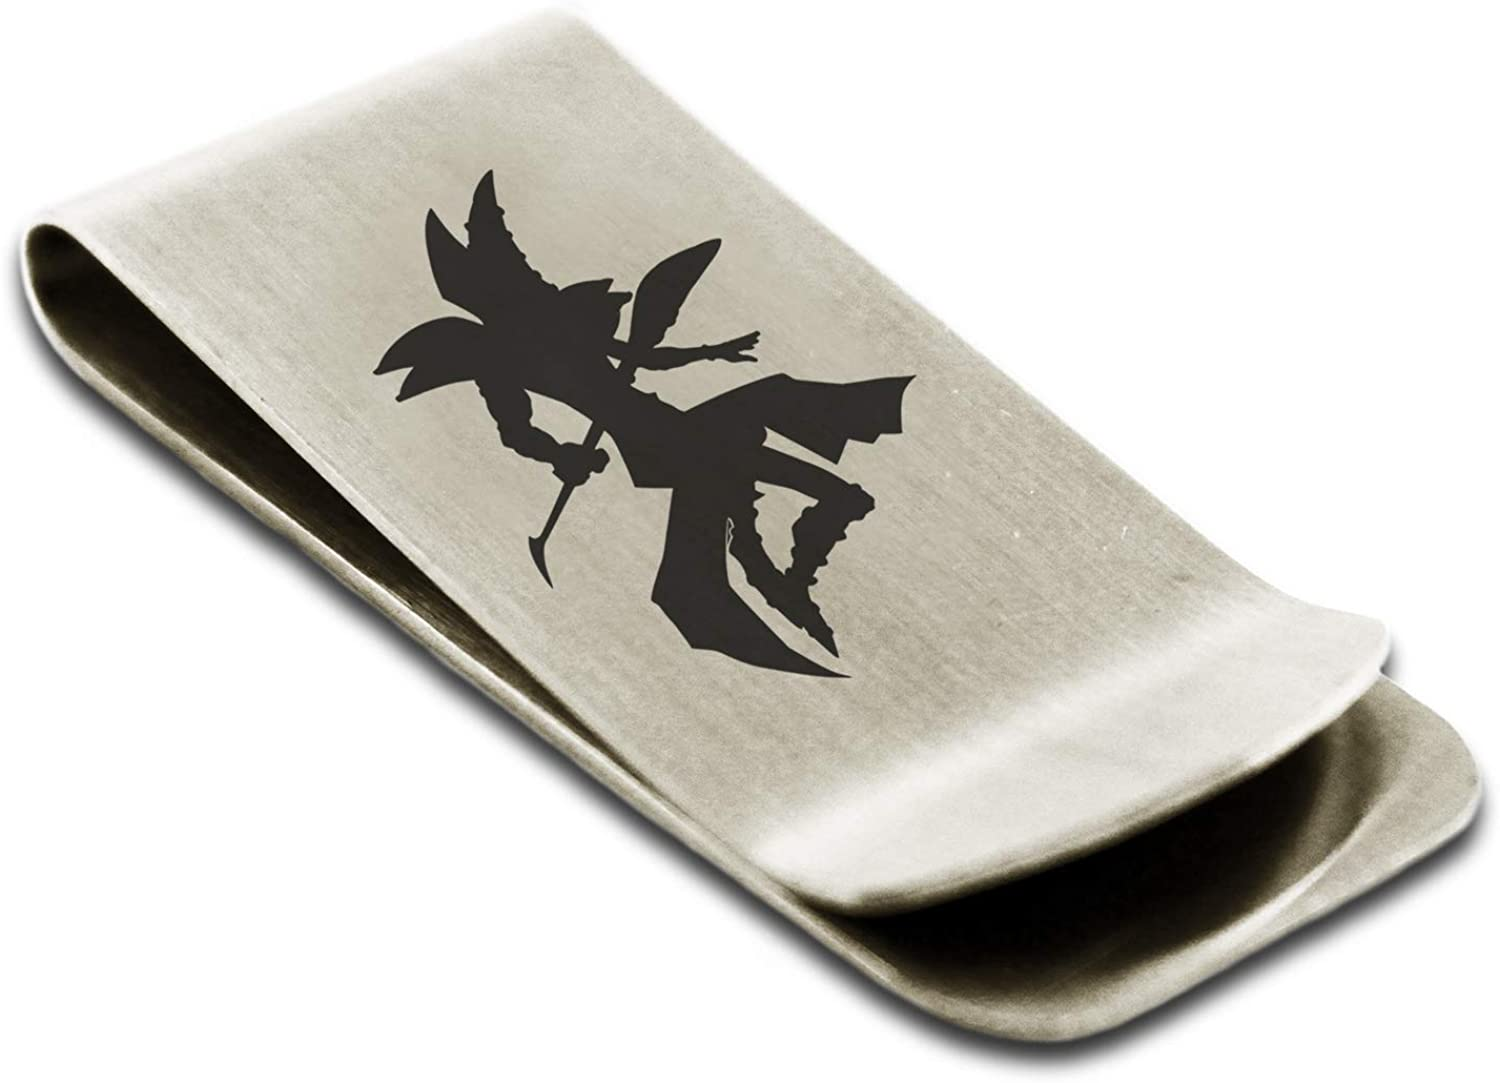 Yu-Gi-Oh! Dark Magician Silhouette Stainless Steel Money Clip Credit Card Holder